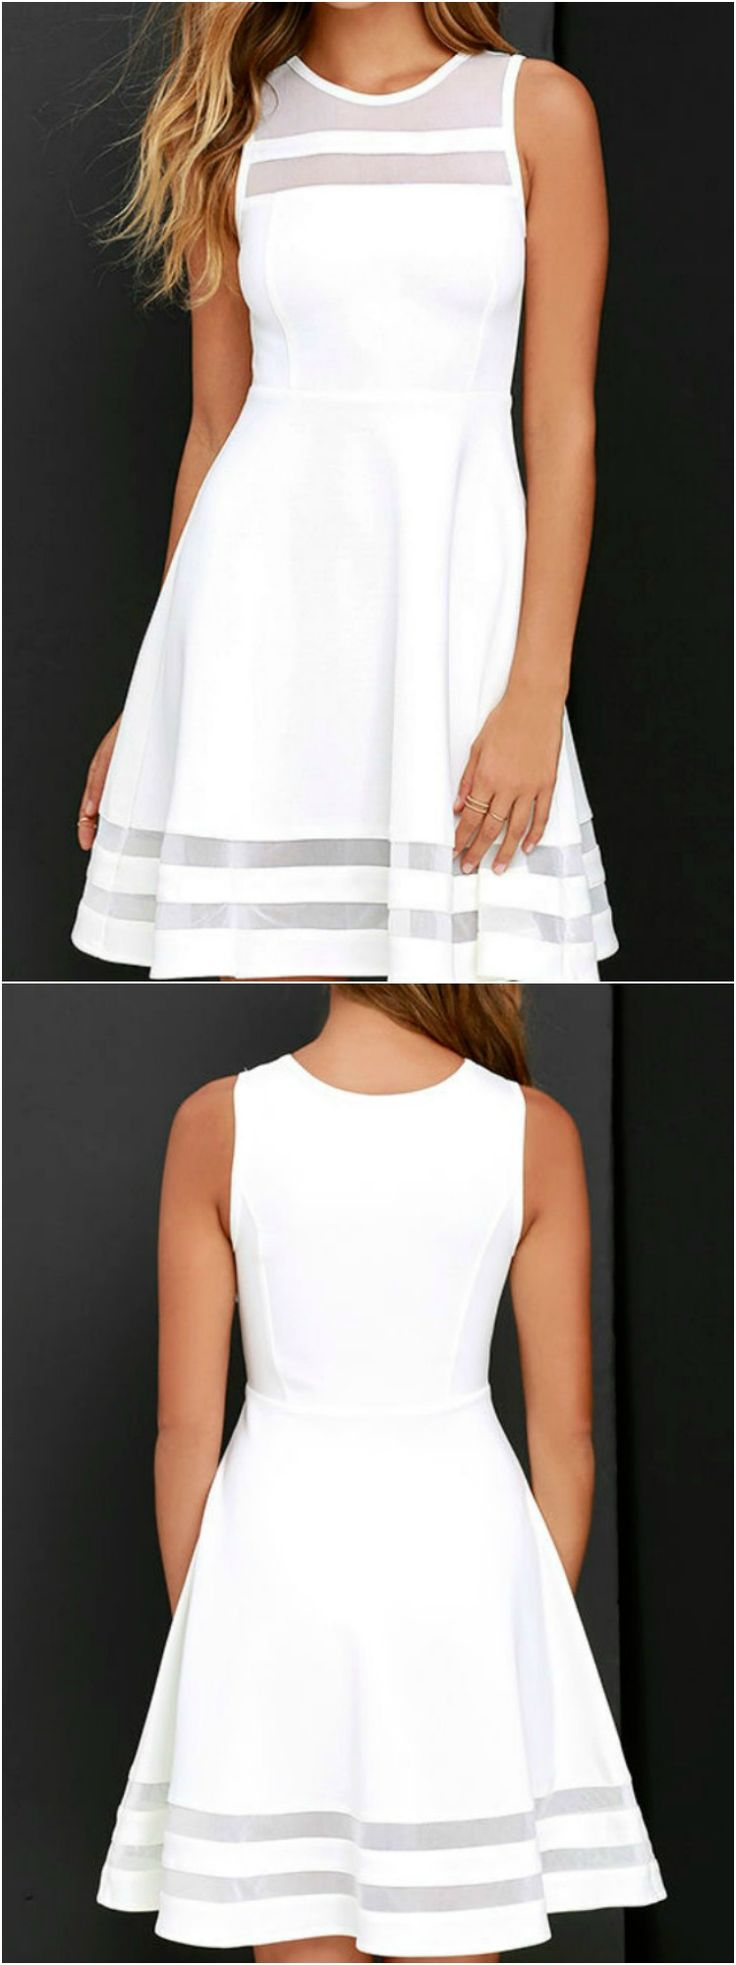 White Dress:You're bound to make a great first impression in this dress! The classy, feminine style will do the talking!  Short White Dress| Graduation Dress| Summer Dresses |Bridal Shower Dress TheChicFind.com